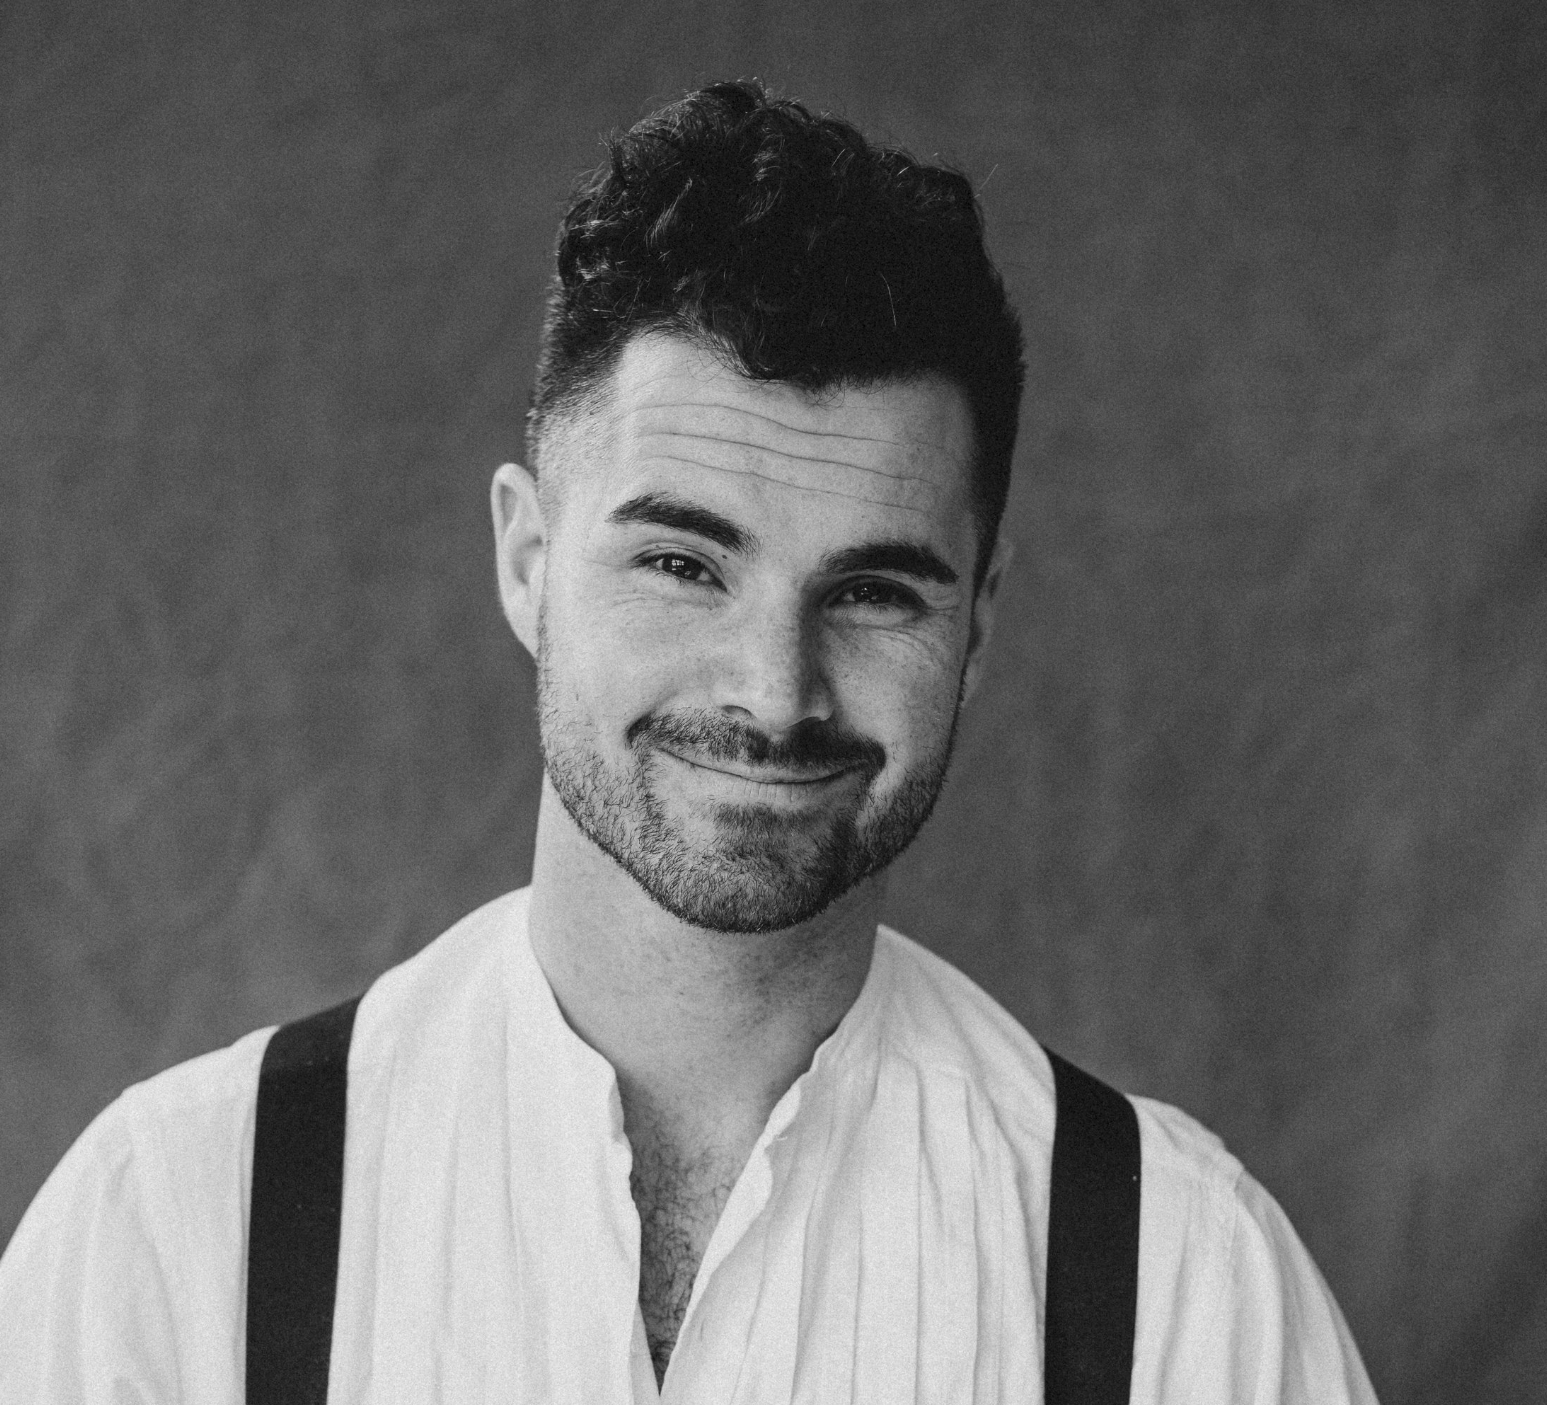 - Troy David Mercier(MFA) is a multifaceted artist specialized in both performing and teaching devised physical theatre.His passion and strength is creating original works of performative art in collaboration with artists of the performing and visual arts.